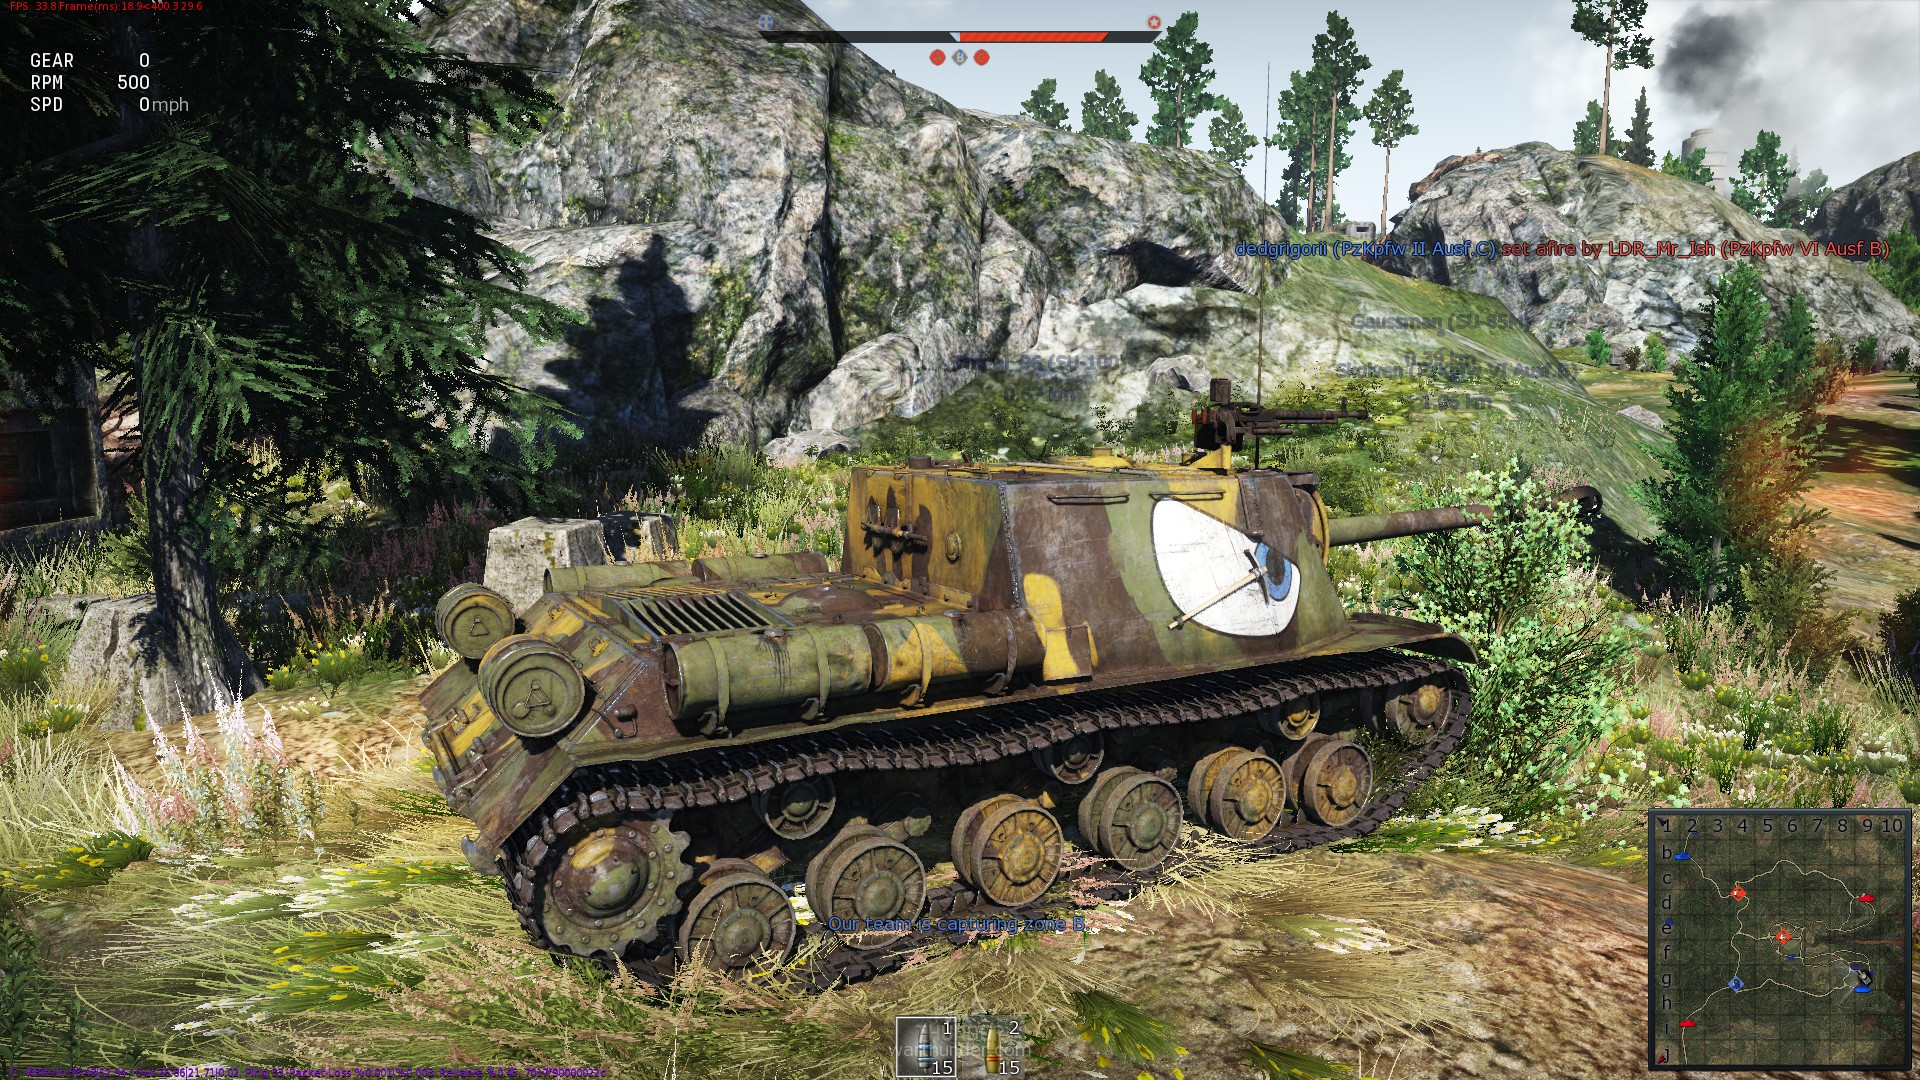 21+ How To Download War Thunder Skins On Ps4 Pictures